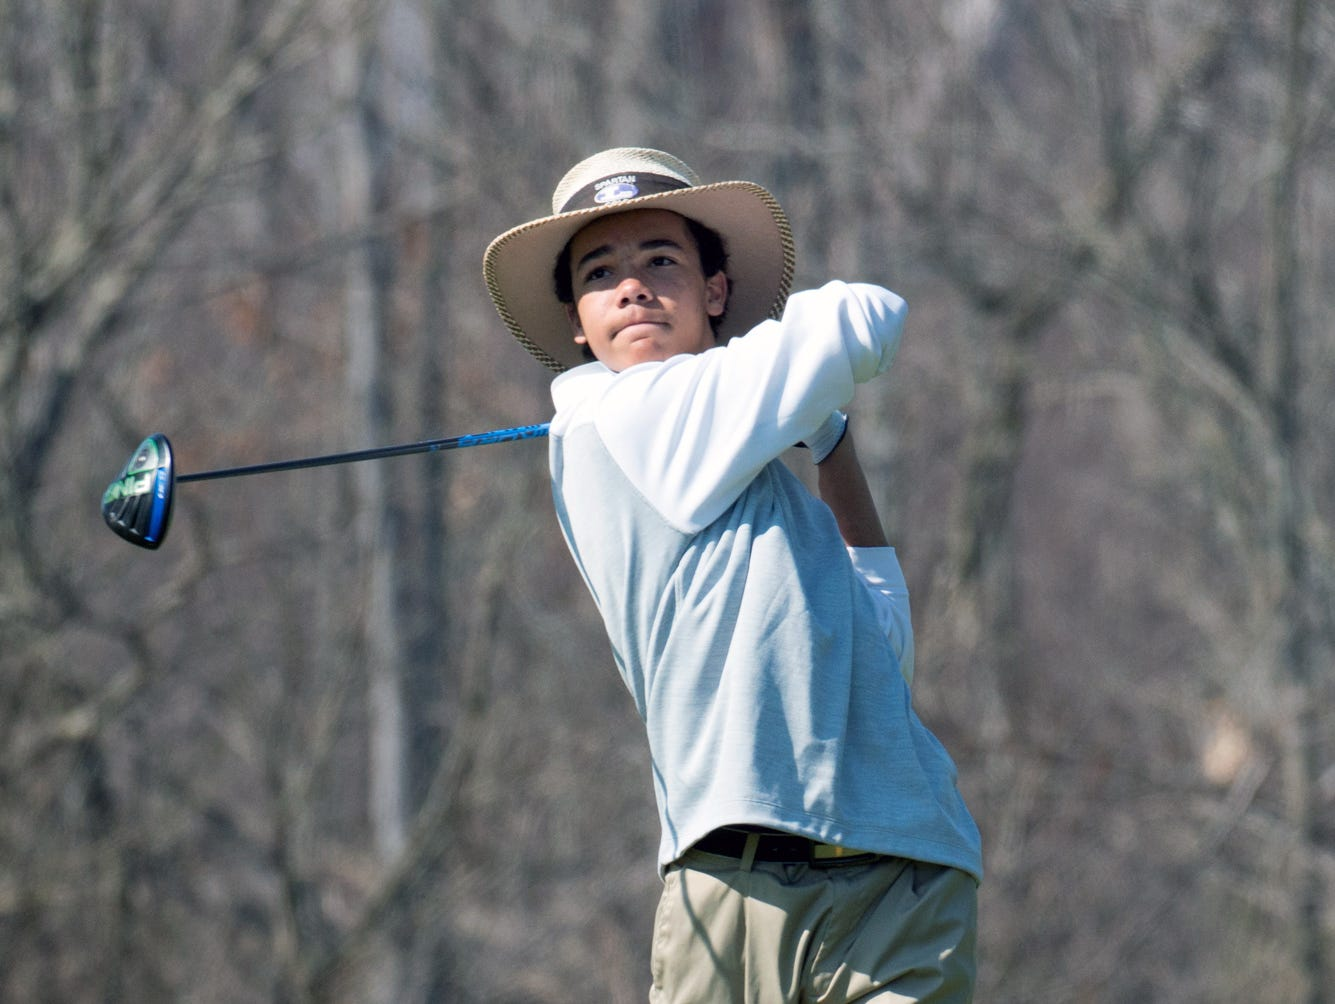 Andrew Walker of Lakeview tees off on the 13th hole Thursday afternoon at Cedar Creek golf course during the Lakeview Jamboree.